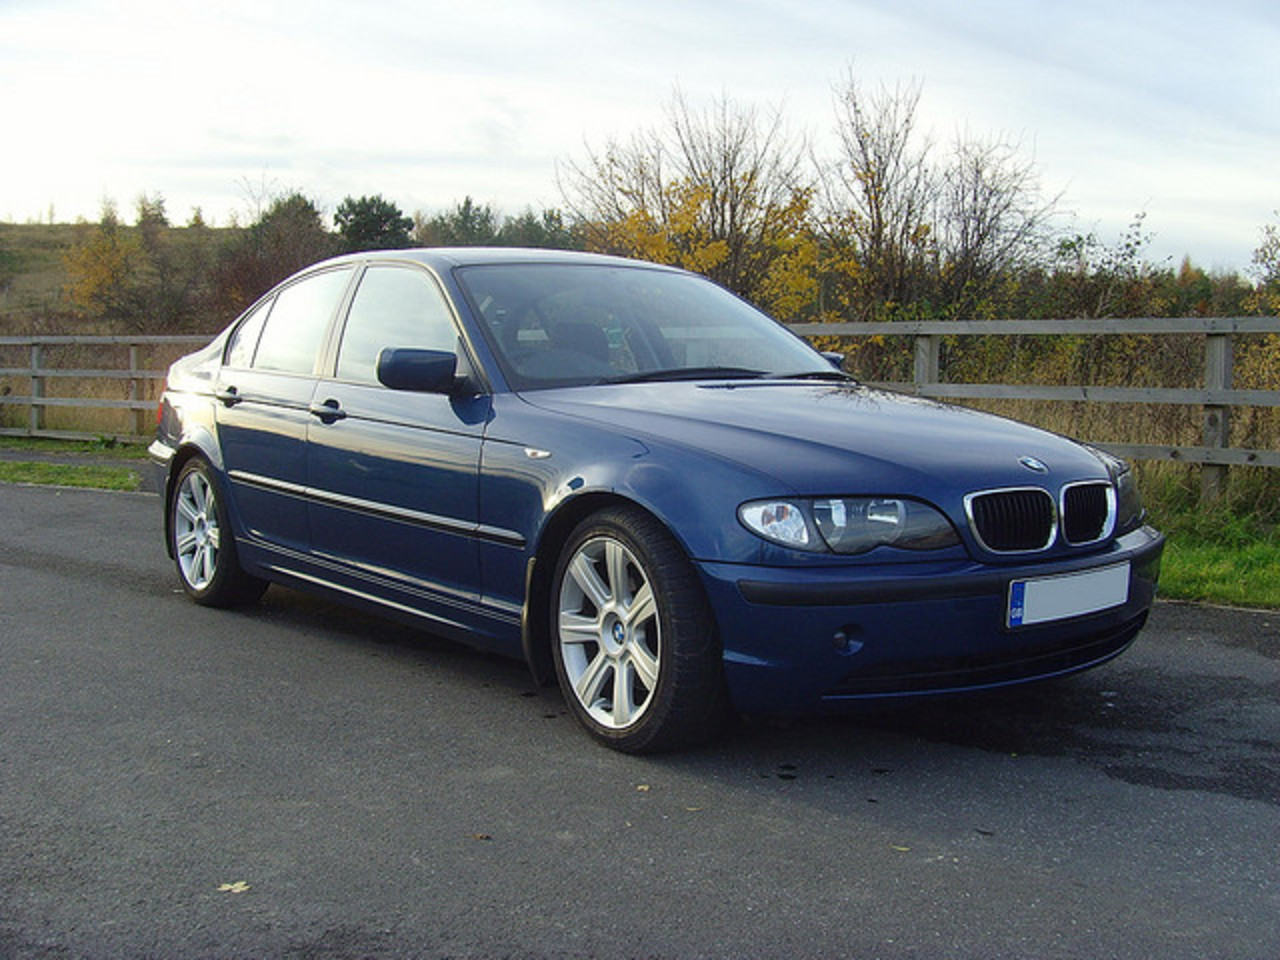 bmw 320d e46 facelift | Flickr - Photo Sharing!